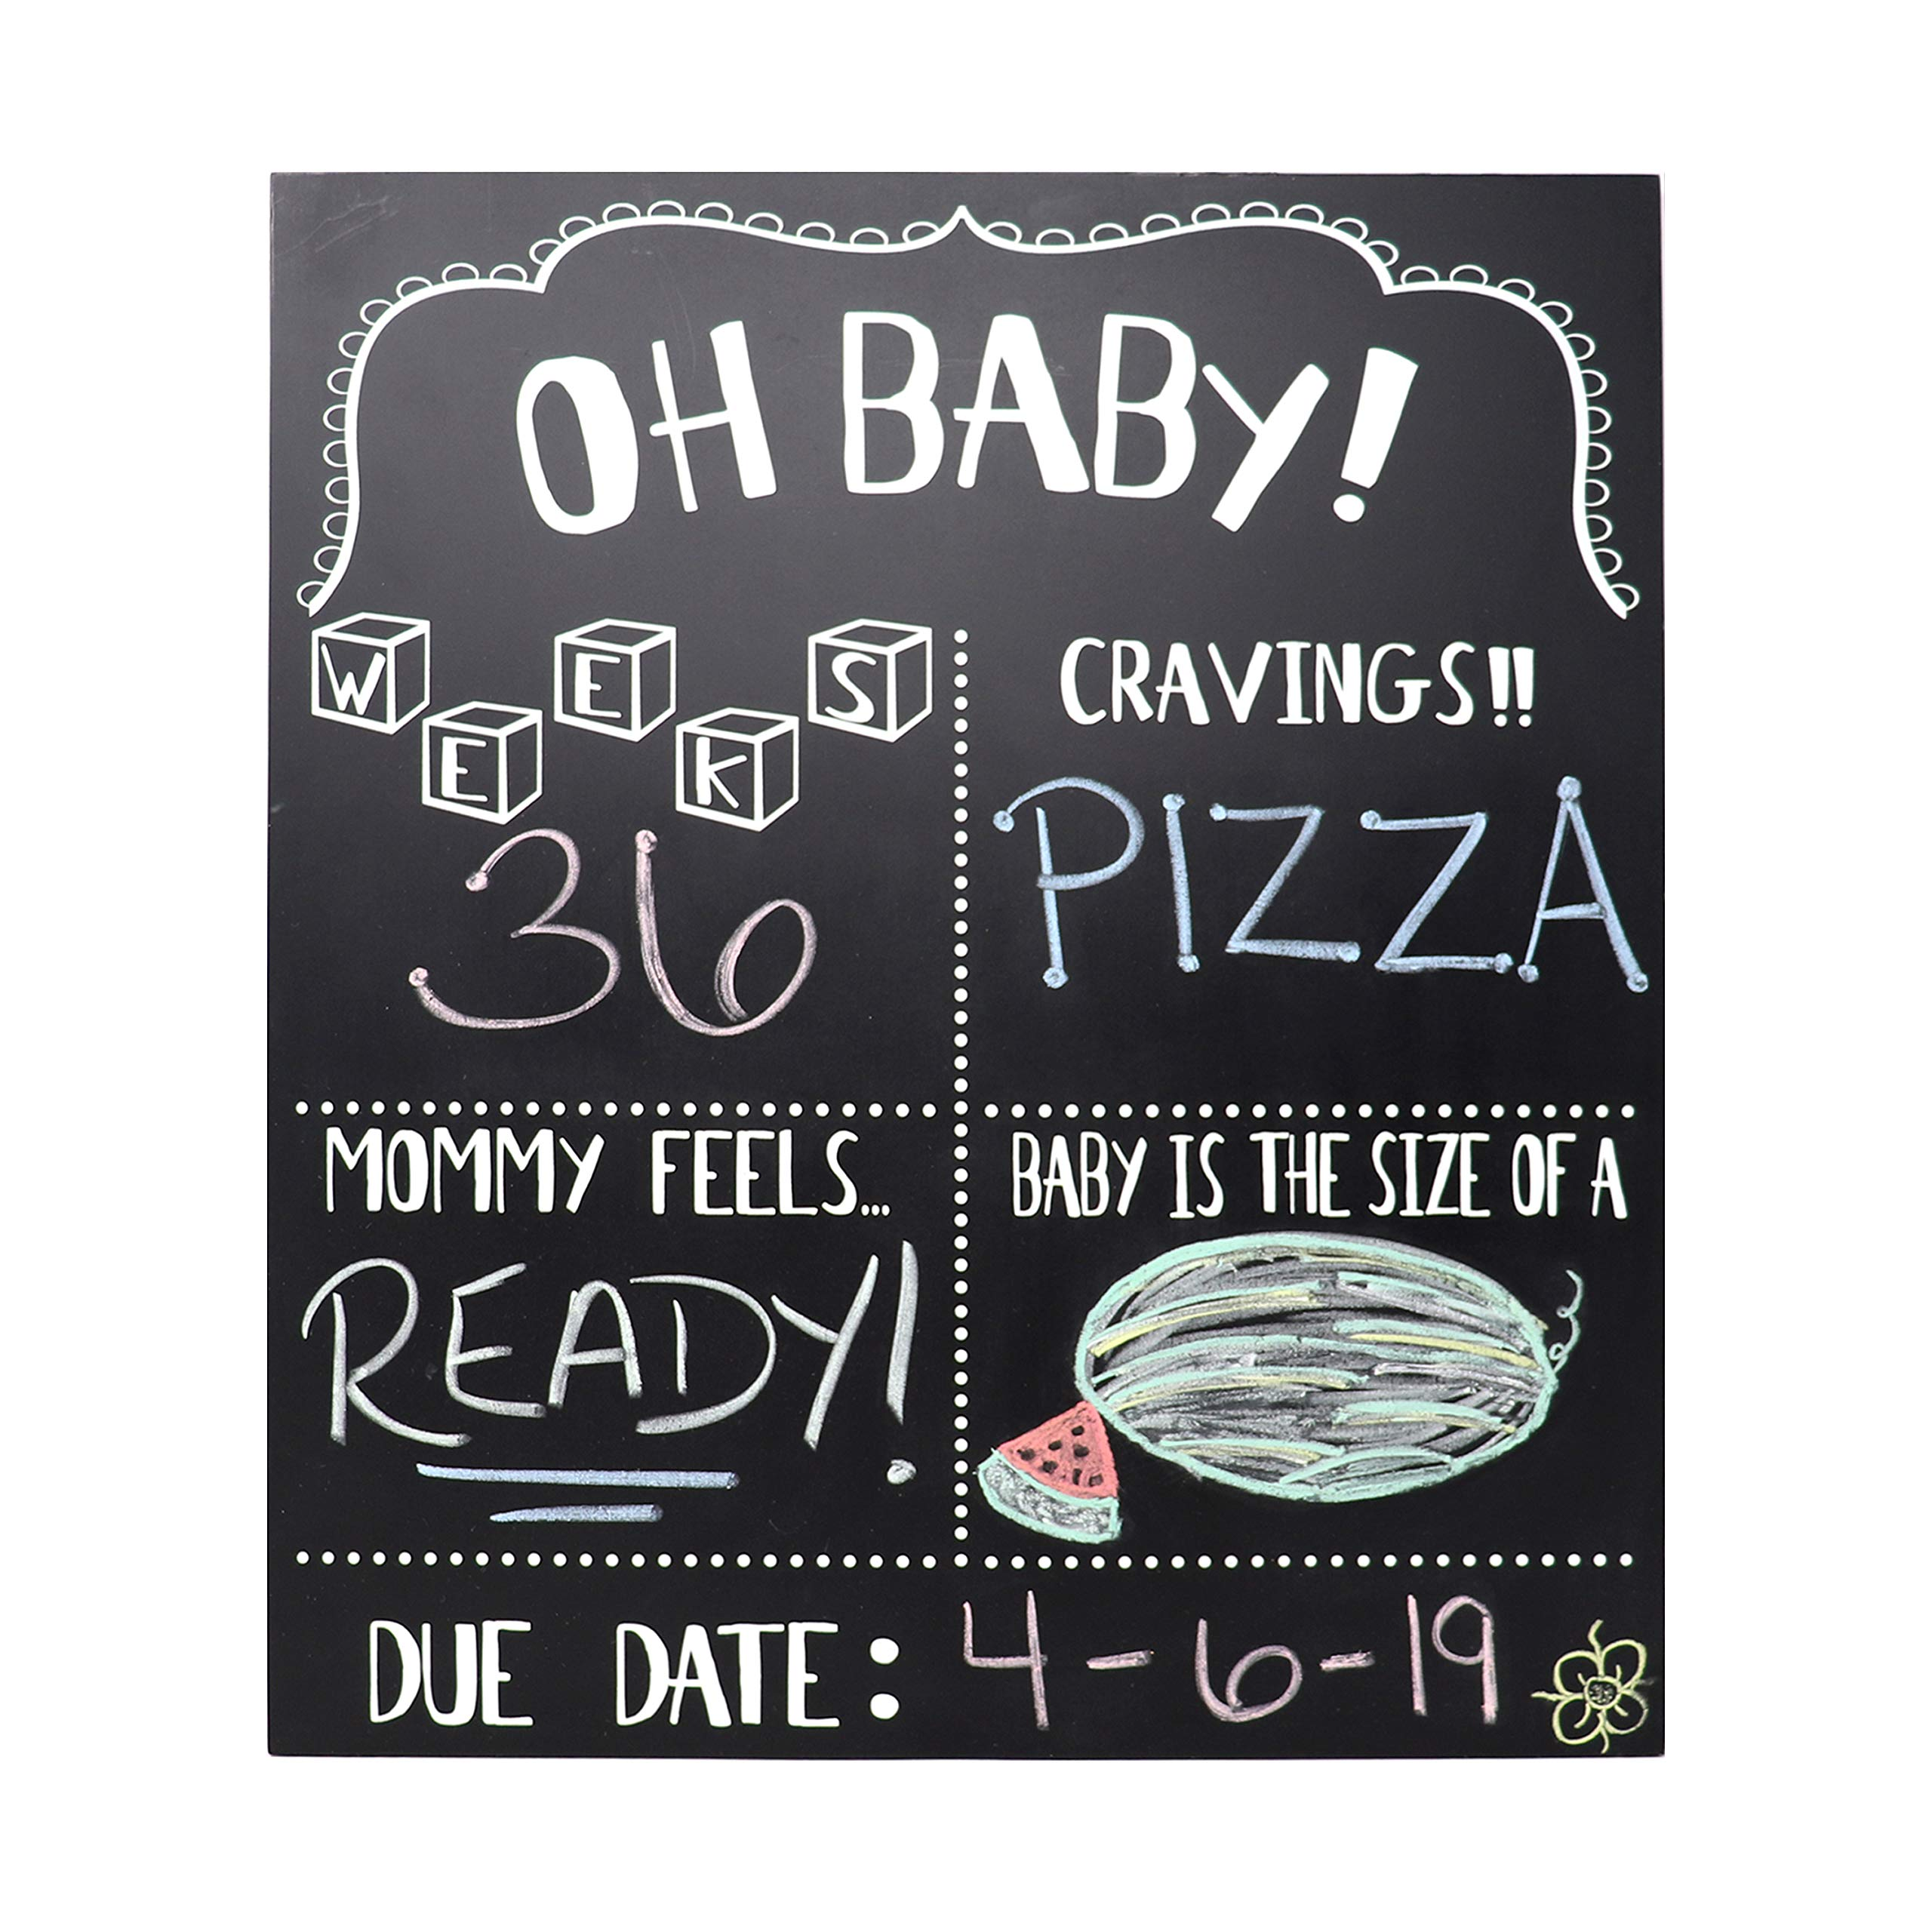 JennyGems Pregnancy Announcement Chalkboard and Photo Prop - Pregnancy Tracker Chalkboard - Extra Large Size 14 x 16 - Gender Reveal Monthly Milestones Countdown Week by Week Tracker Board by JennyGems